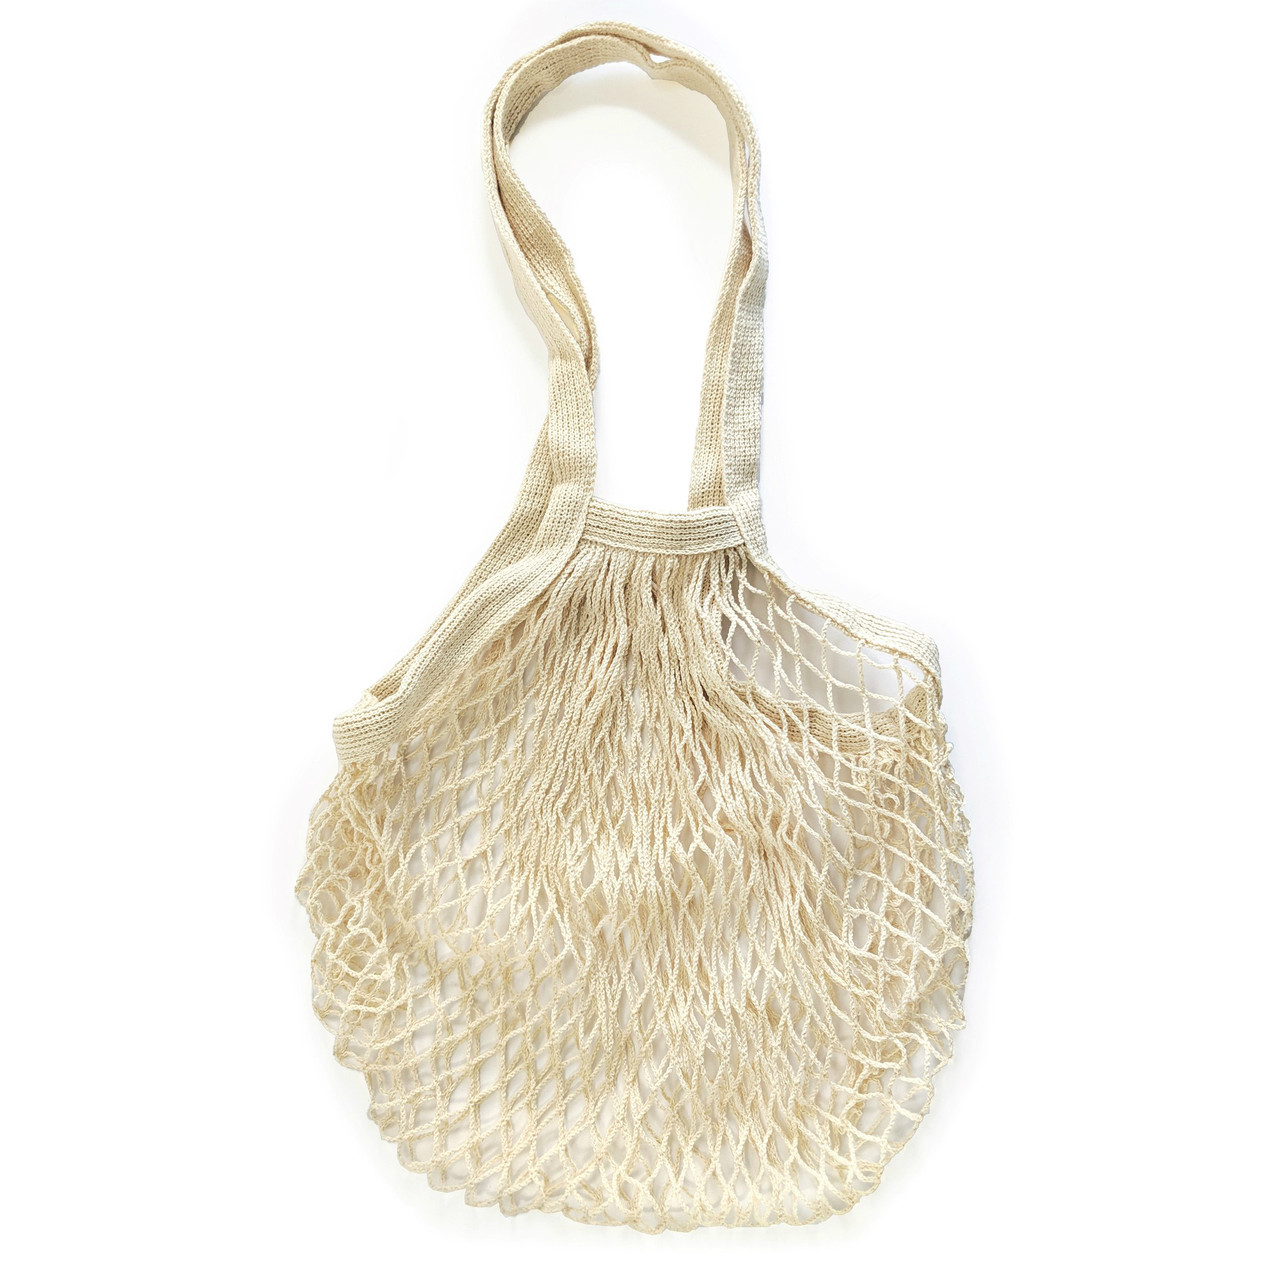 KITCHENBASICS MESH SHOPPING BAG - NATURAL